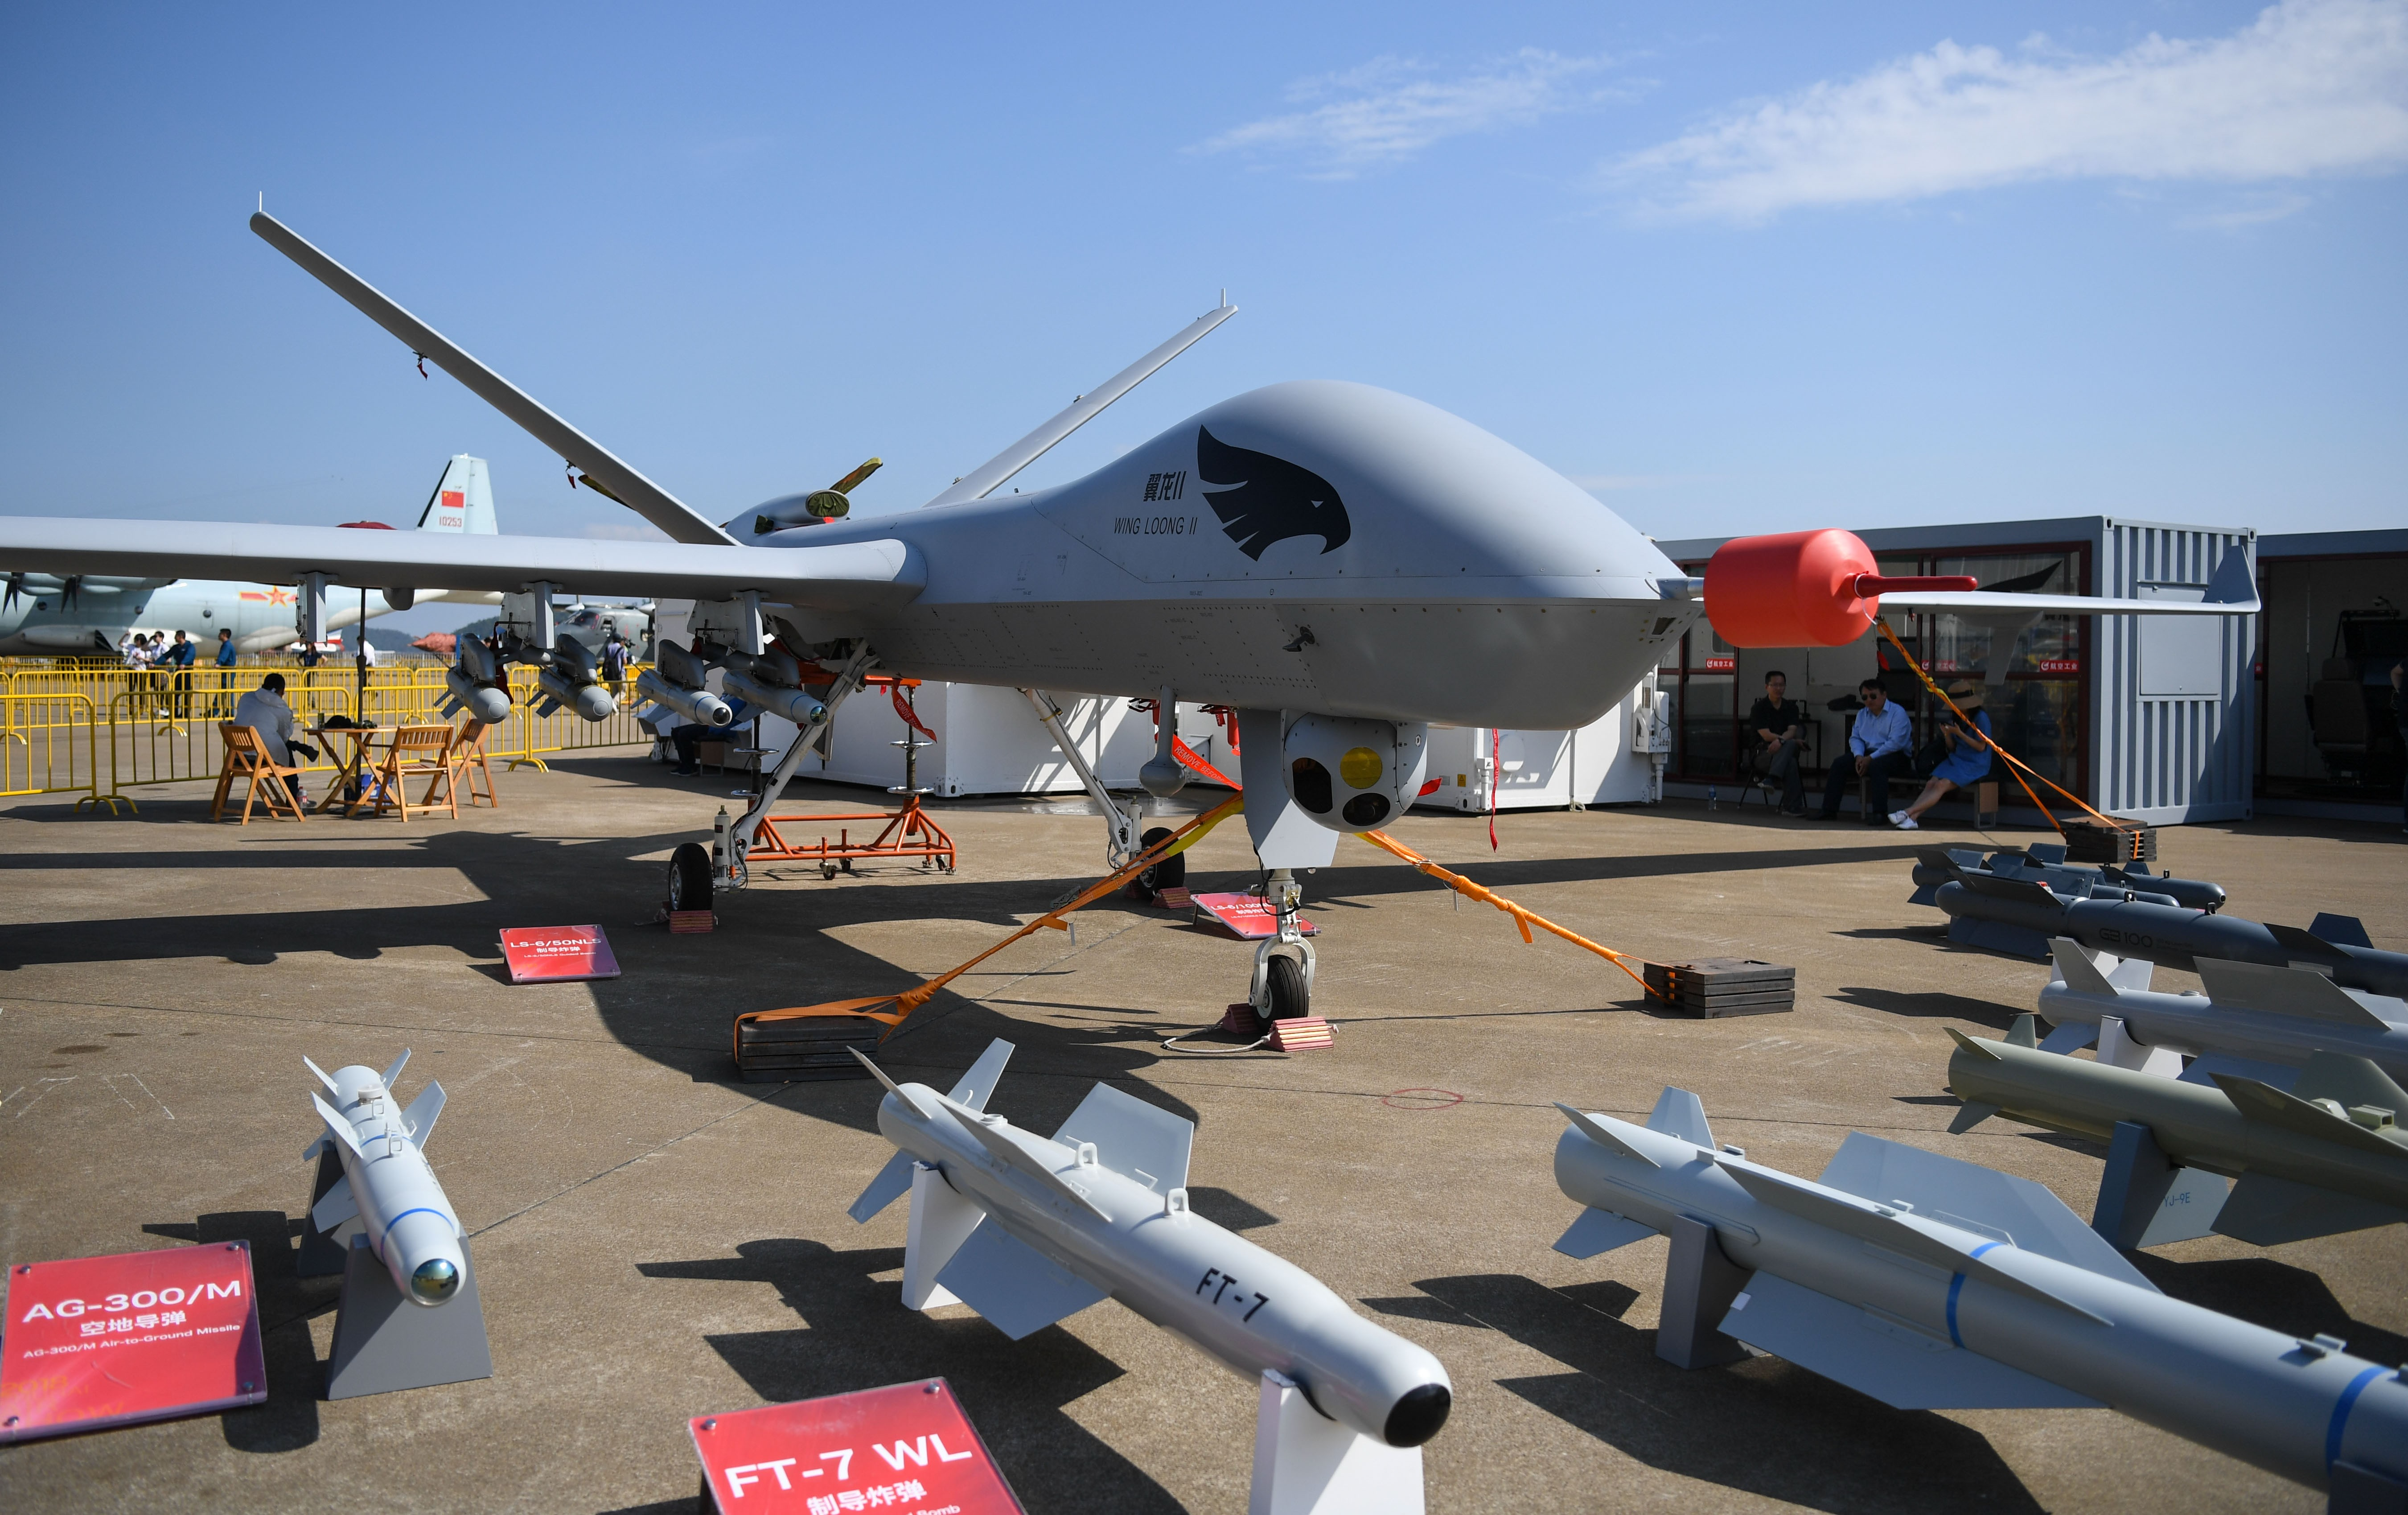 Chinese-made missiles and drones used in Libya conflict, UN experts